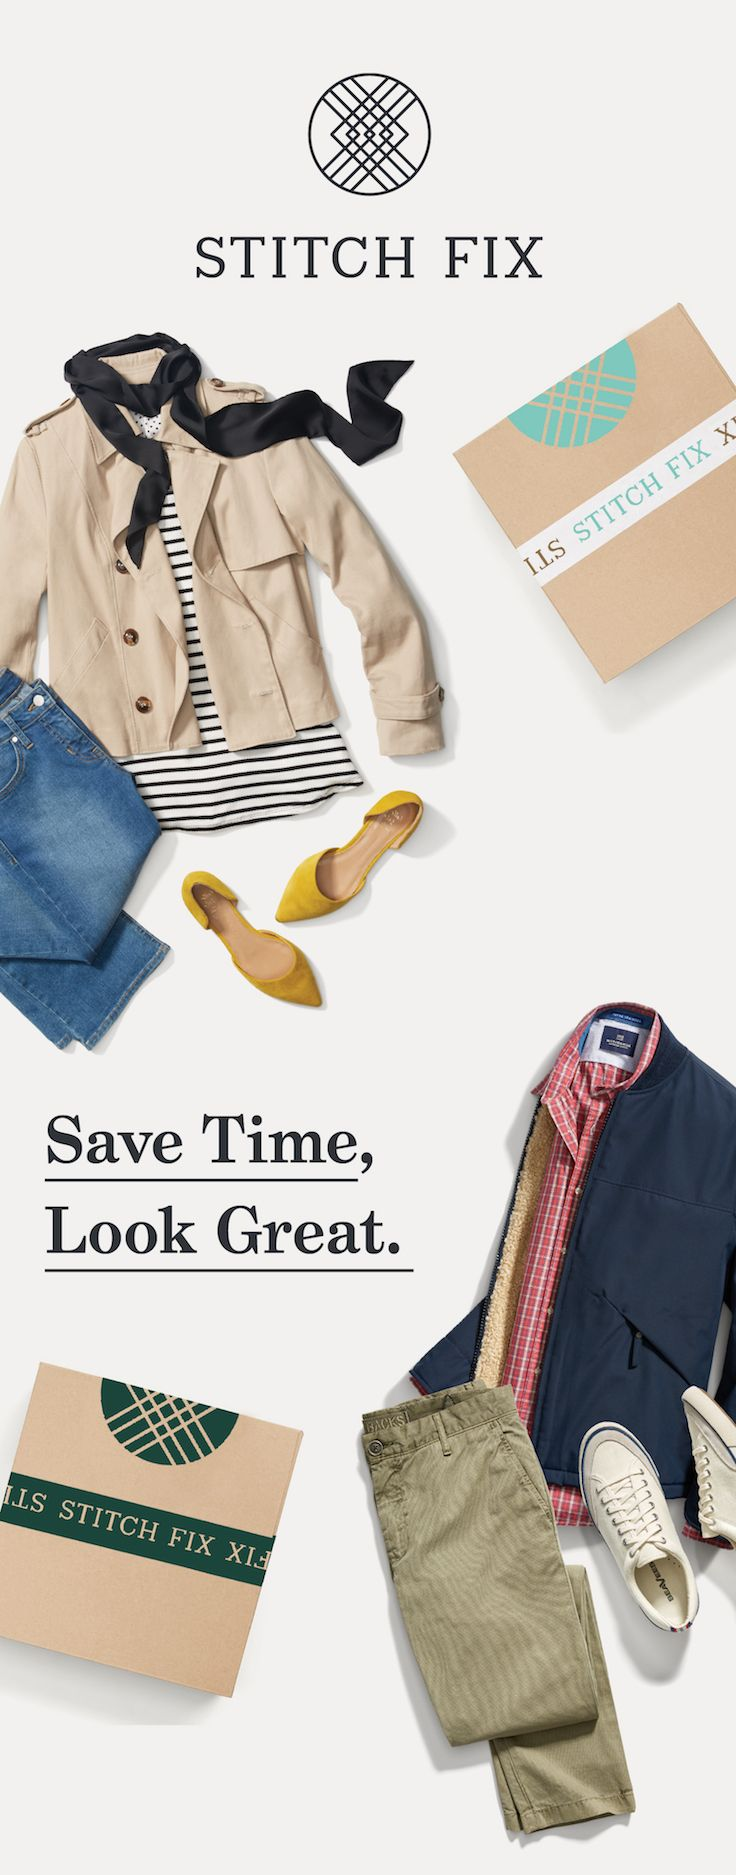 Want your own personal stylist? Stitch Fix is the best online service I've used